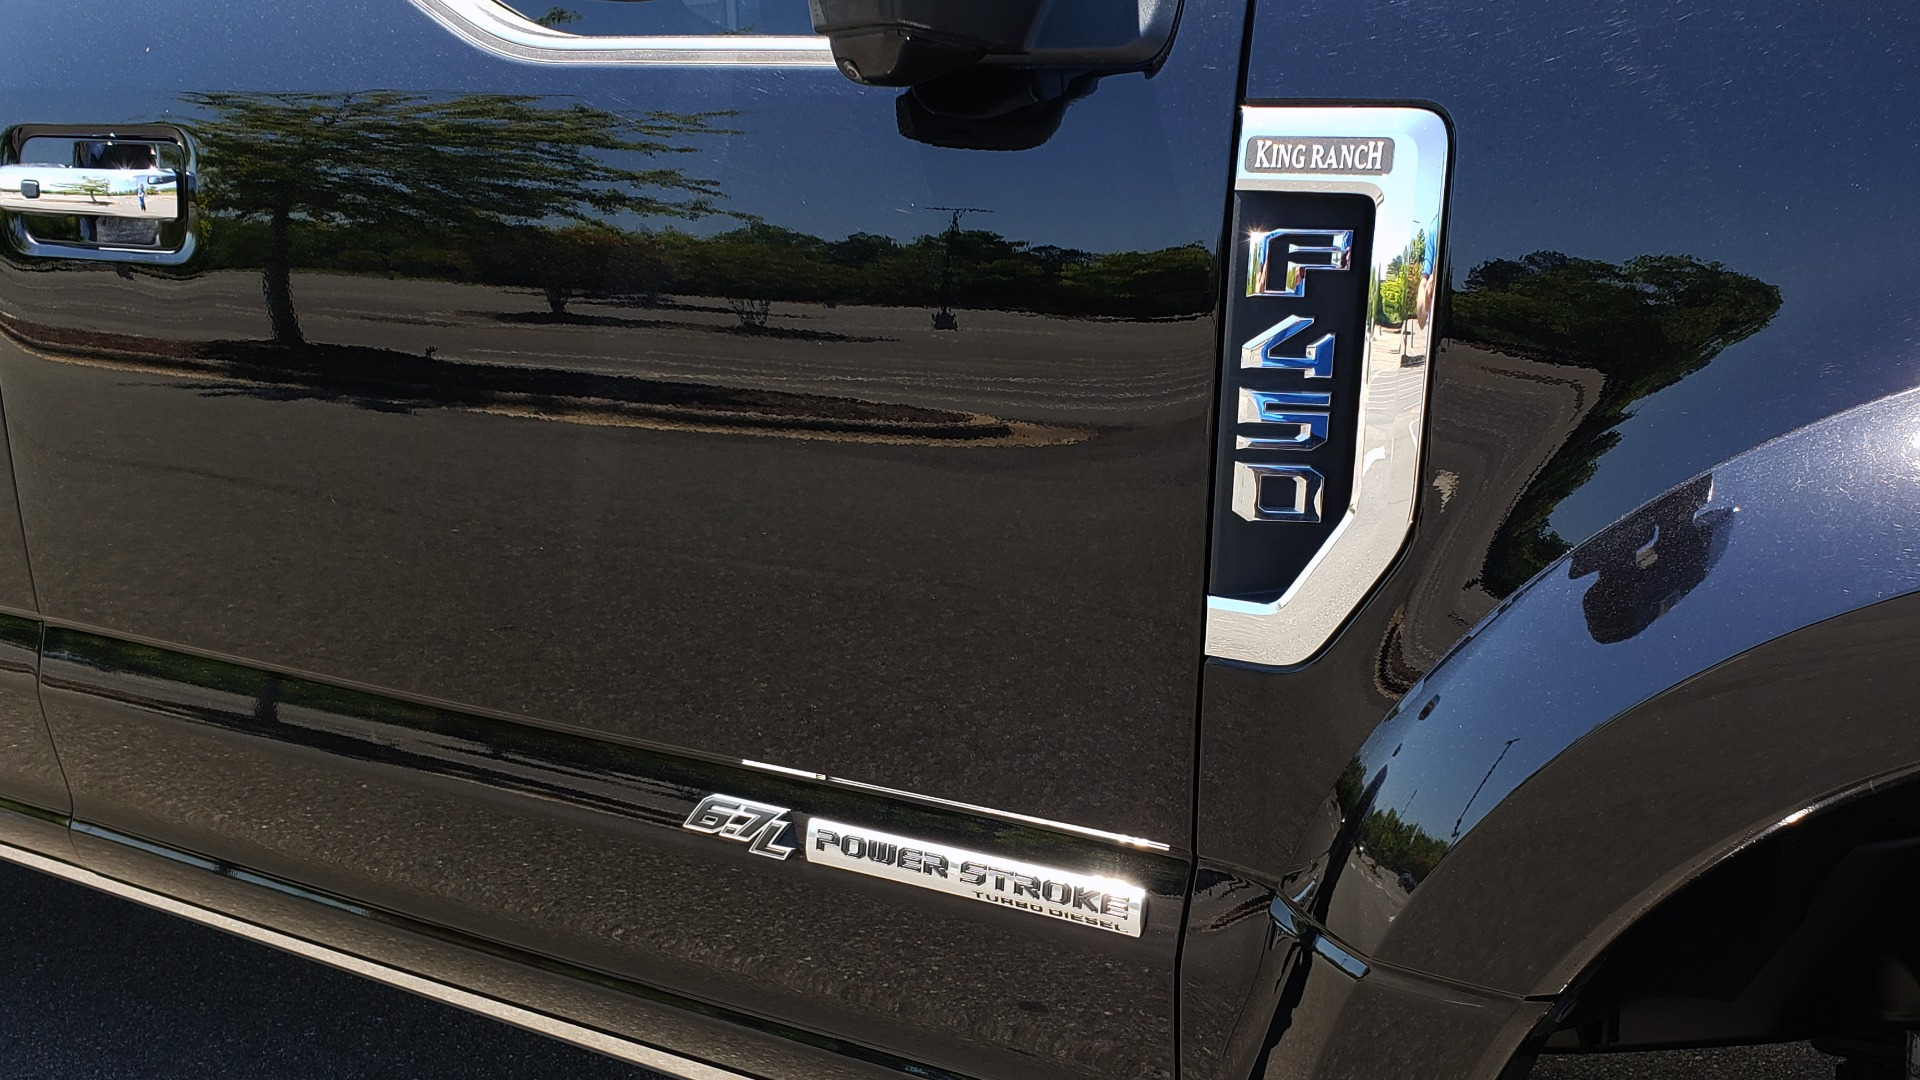 Used 2017 Ford SUPER DUTY F-450 DRW KING RANCH 4X4 / 176IN WB / 6.7L POWER-STROKE / LOADED for sale Sold at Formula Imports in Charlotte NC 28227 14